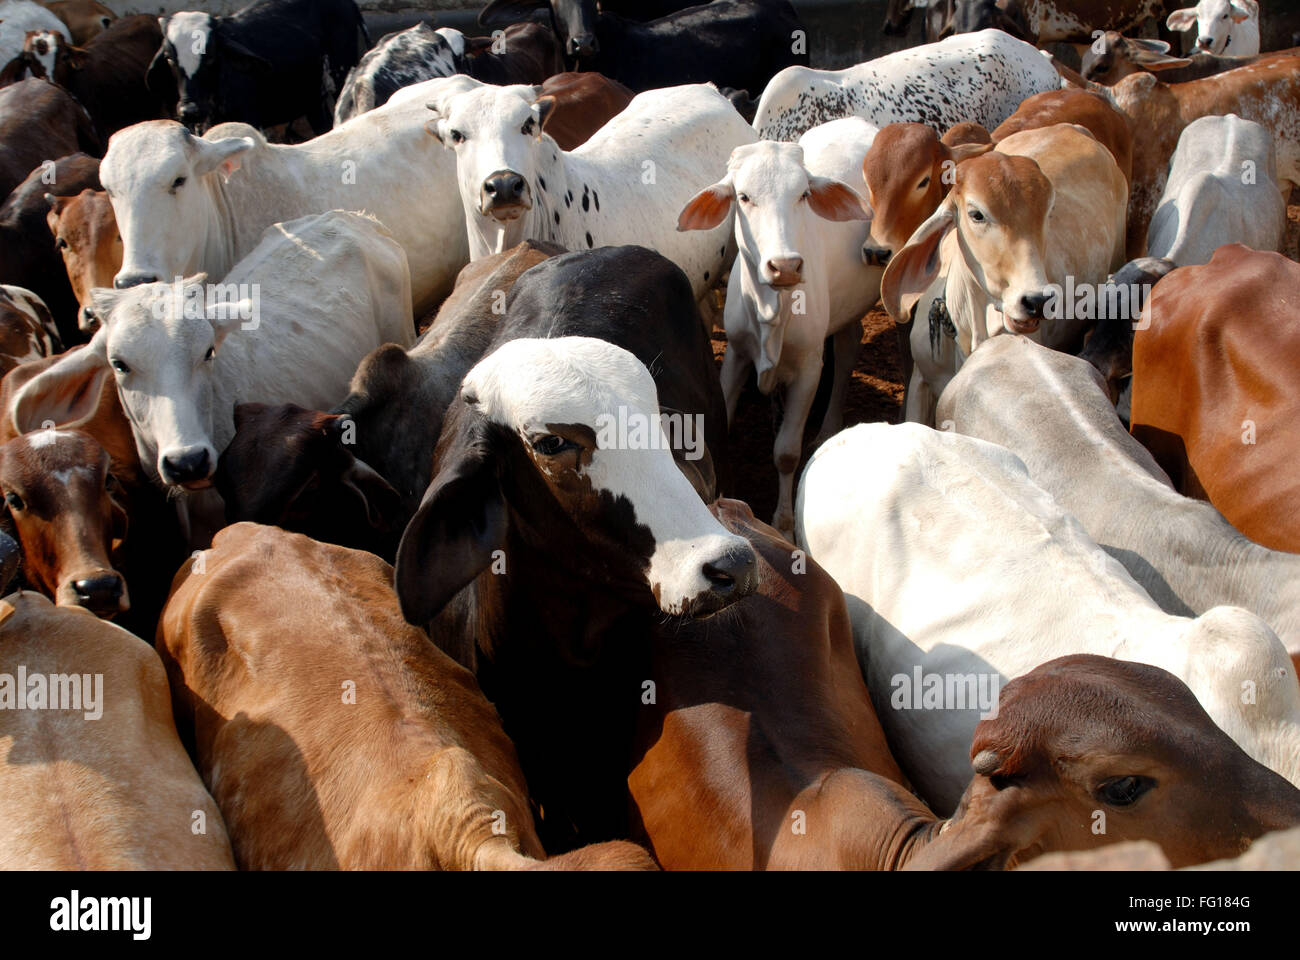 Animale , mucche indiano , India Foto Stock